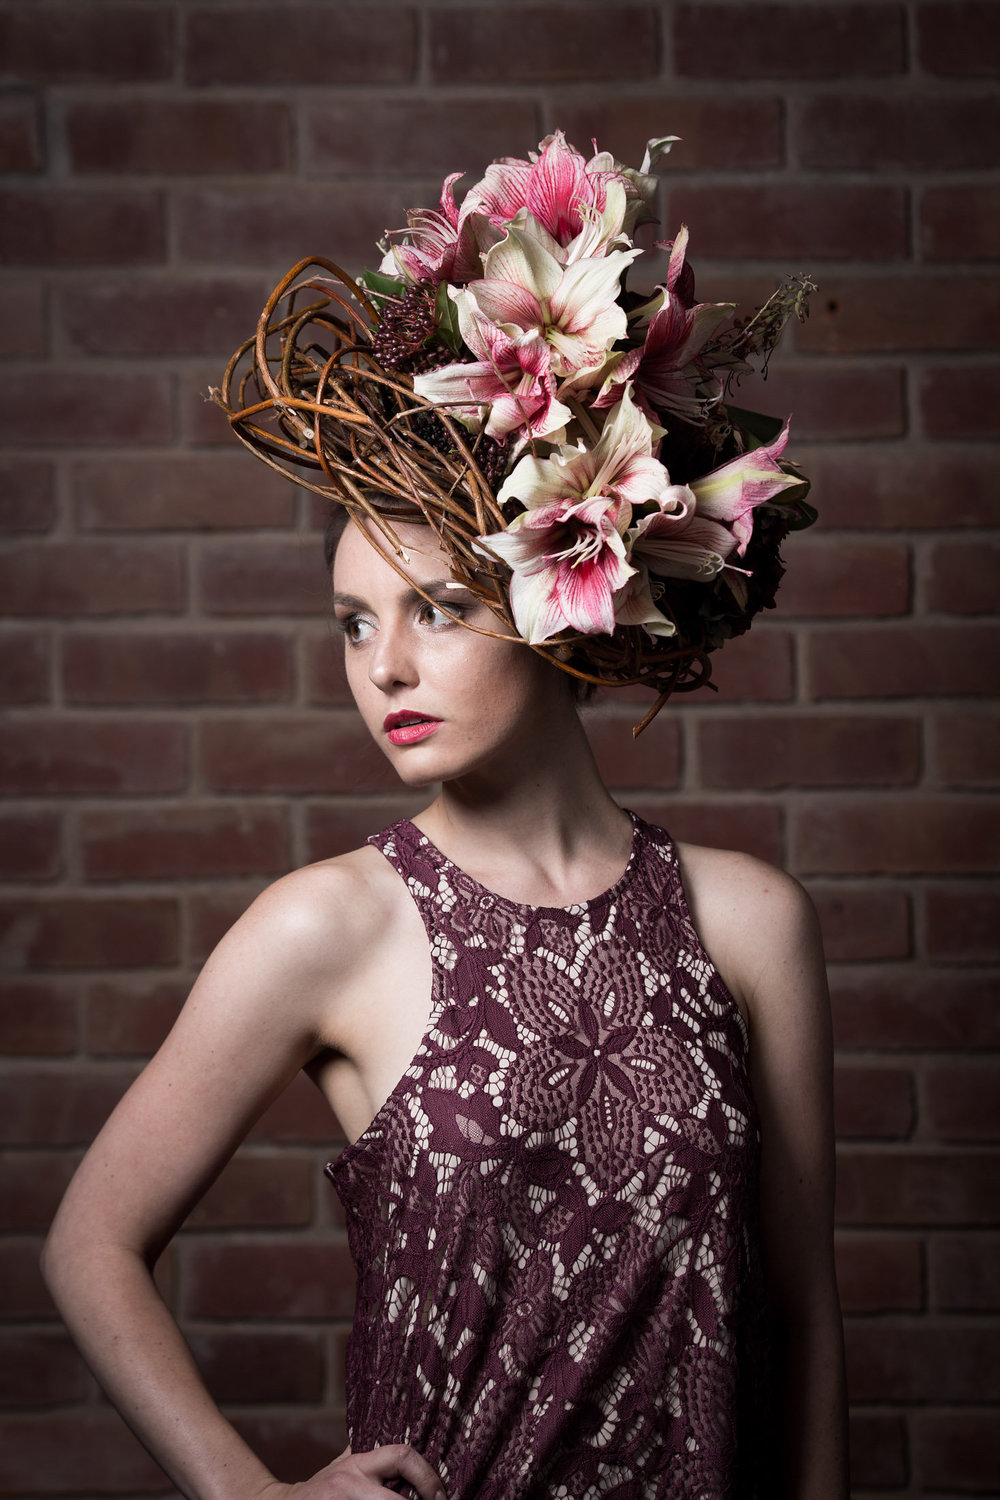 FLOWER COUTURE FASHION SHOW AT NUMU NEW MUSEUM IN LOS GATOS. PHOTOGRAPHY BY PAUL FERRADAS